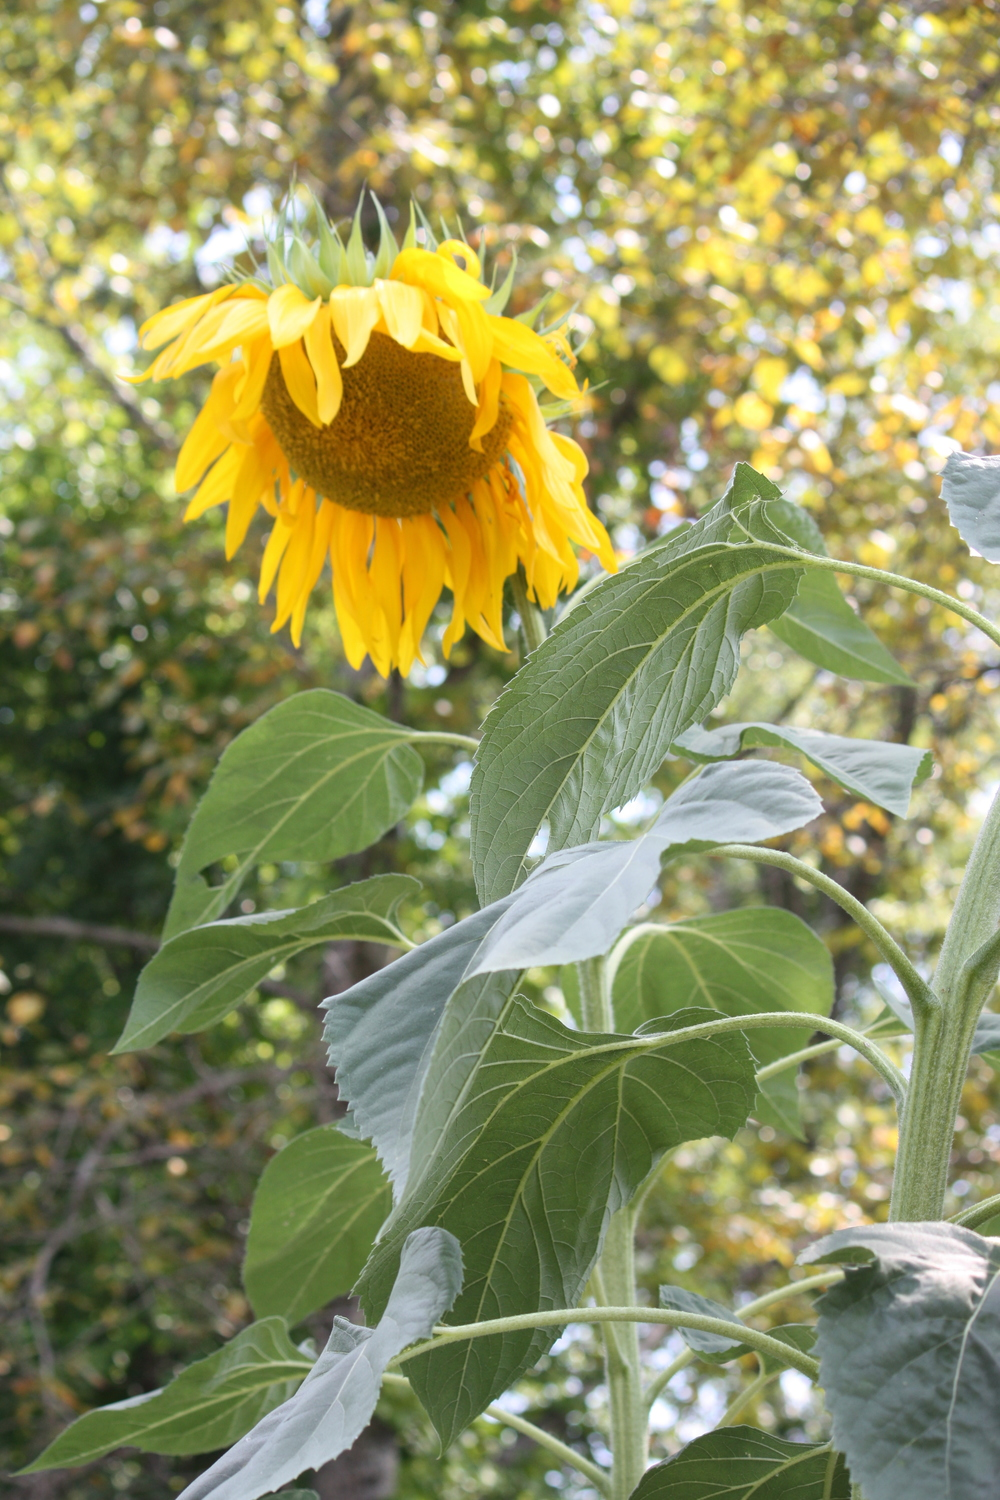 Who will be growing the GIGANTIC Sunflowers this year?